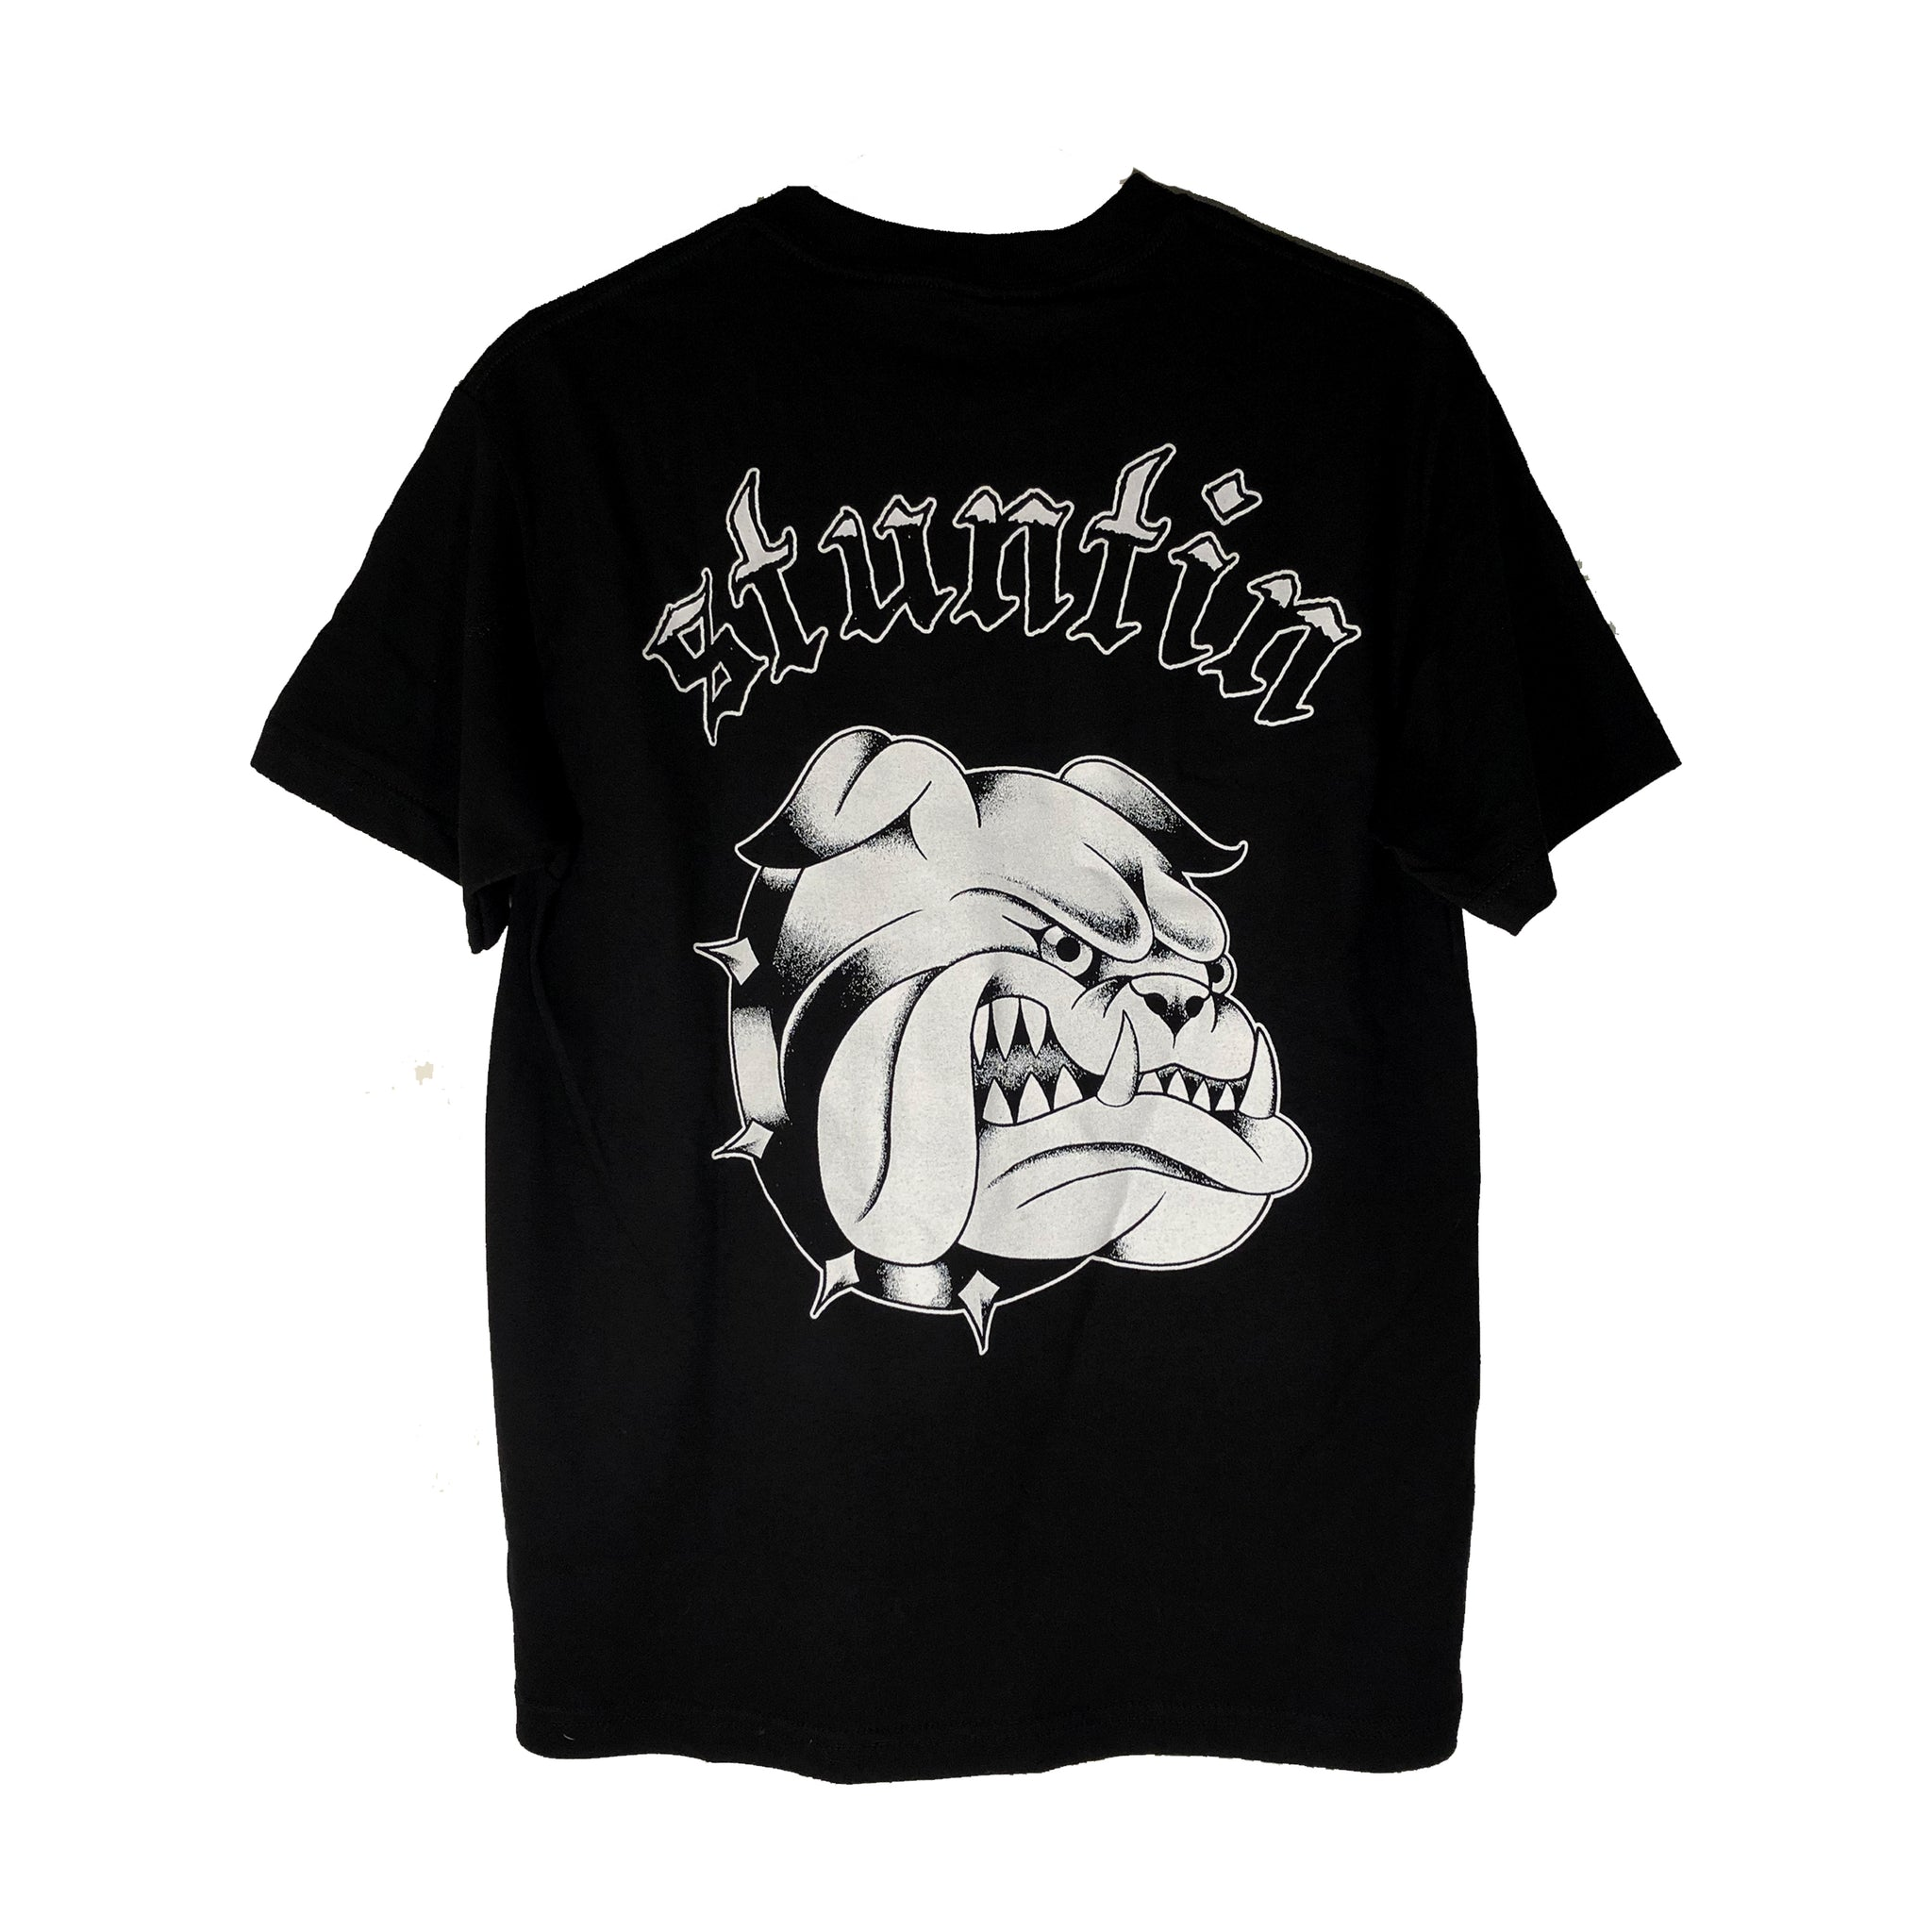 Big Dog Shirt